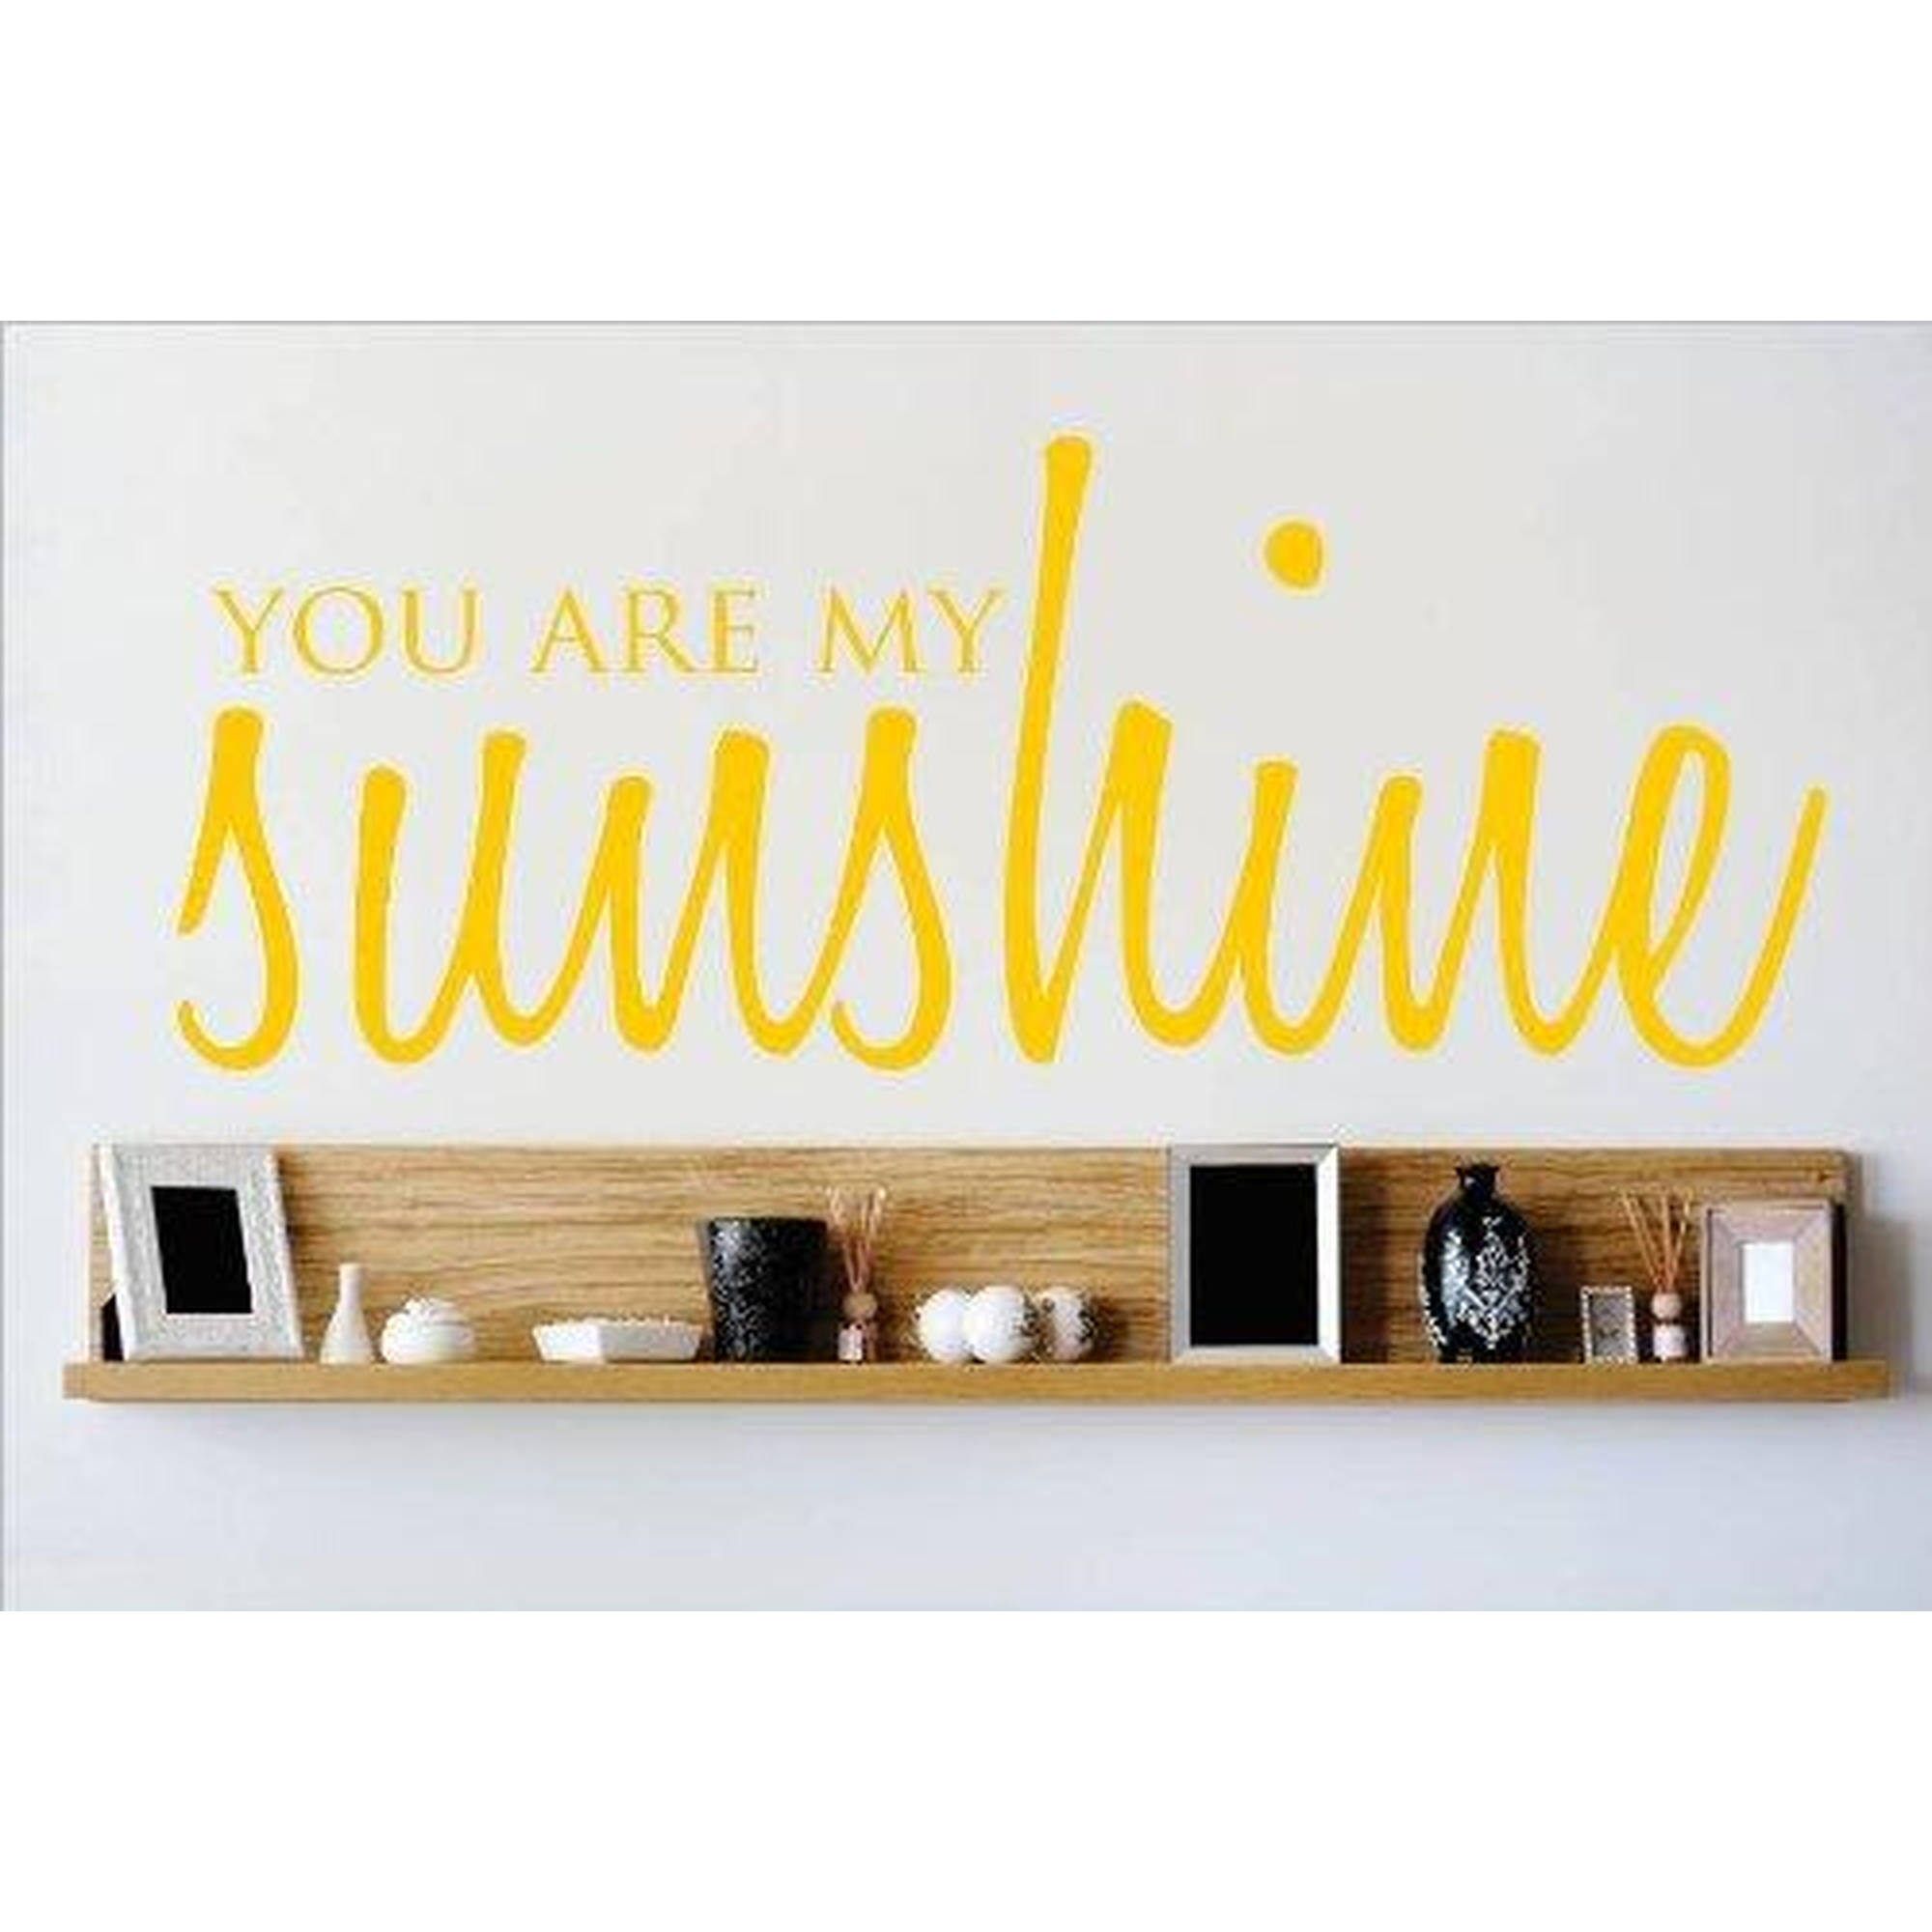 "You Are My Sunshine Quote Living Room Vinyl Wall Decal, 9"" x 20"", Yellow"